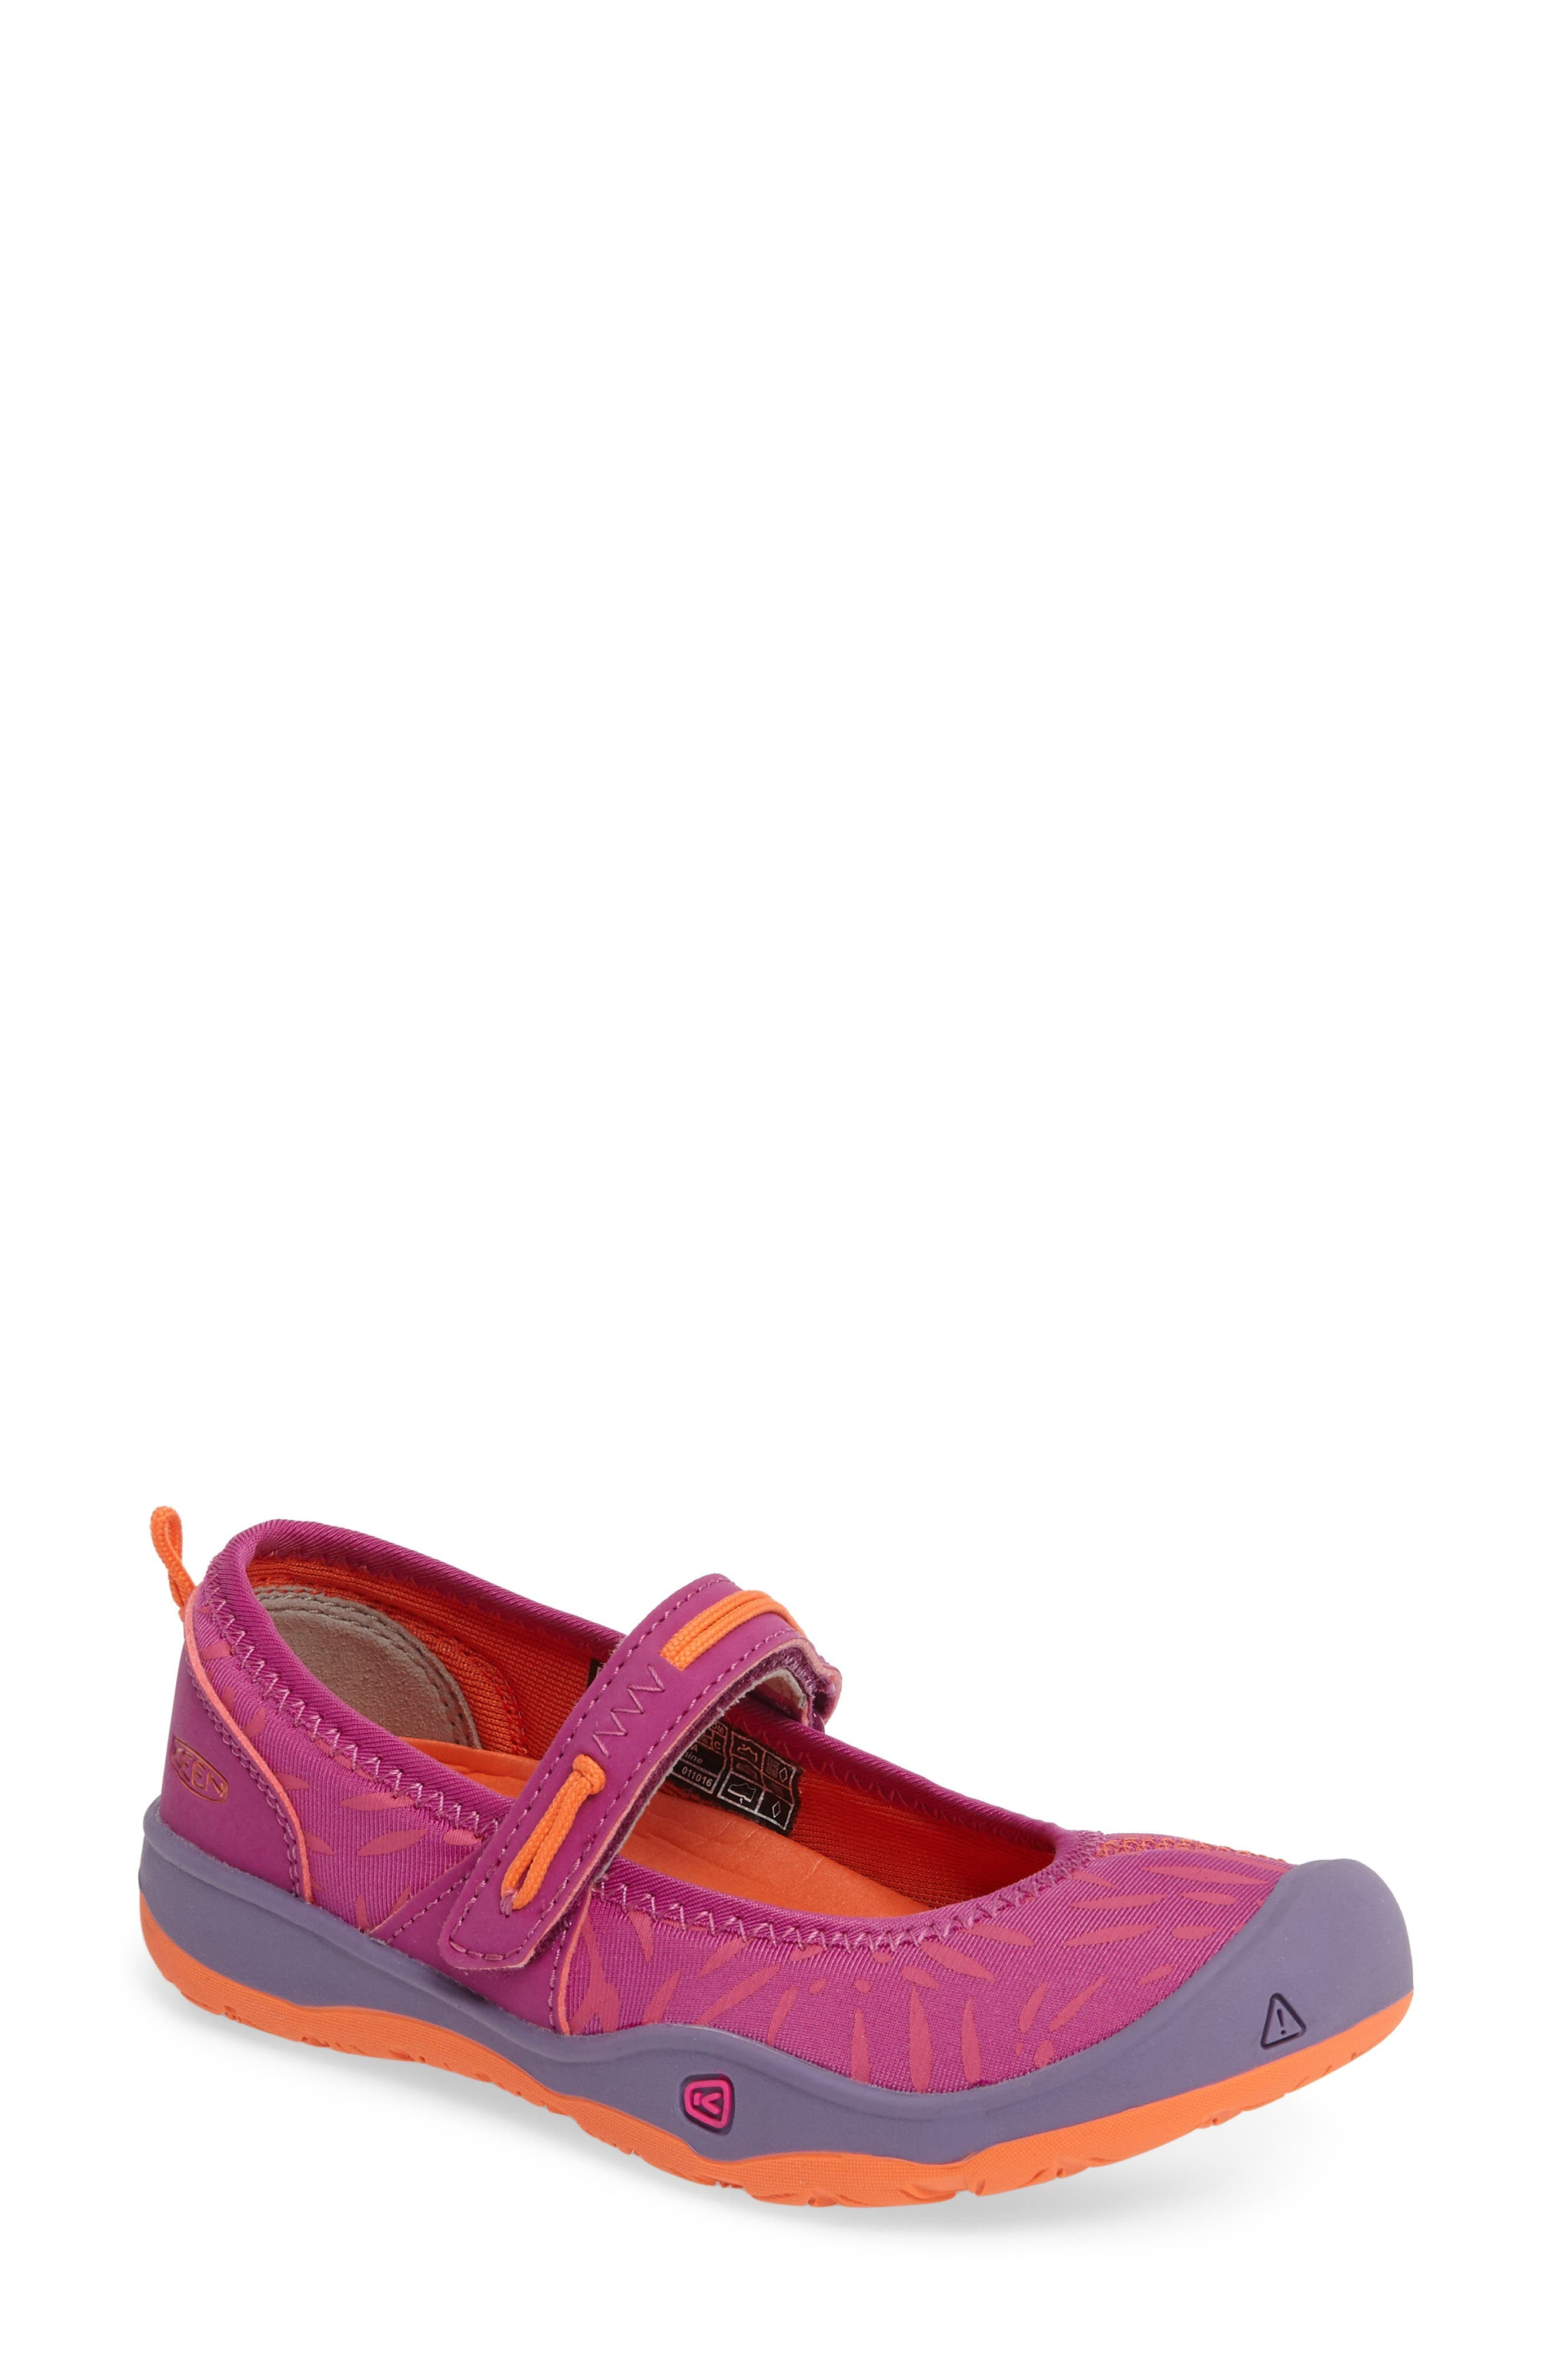 Keen Moxie Mary Jane (Toddler, Little Kid & Big Kid)